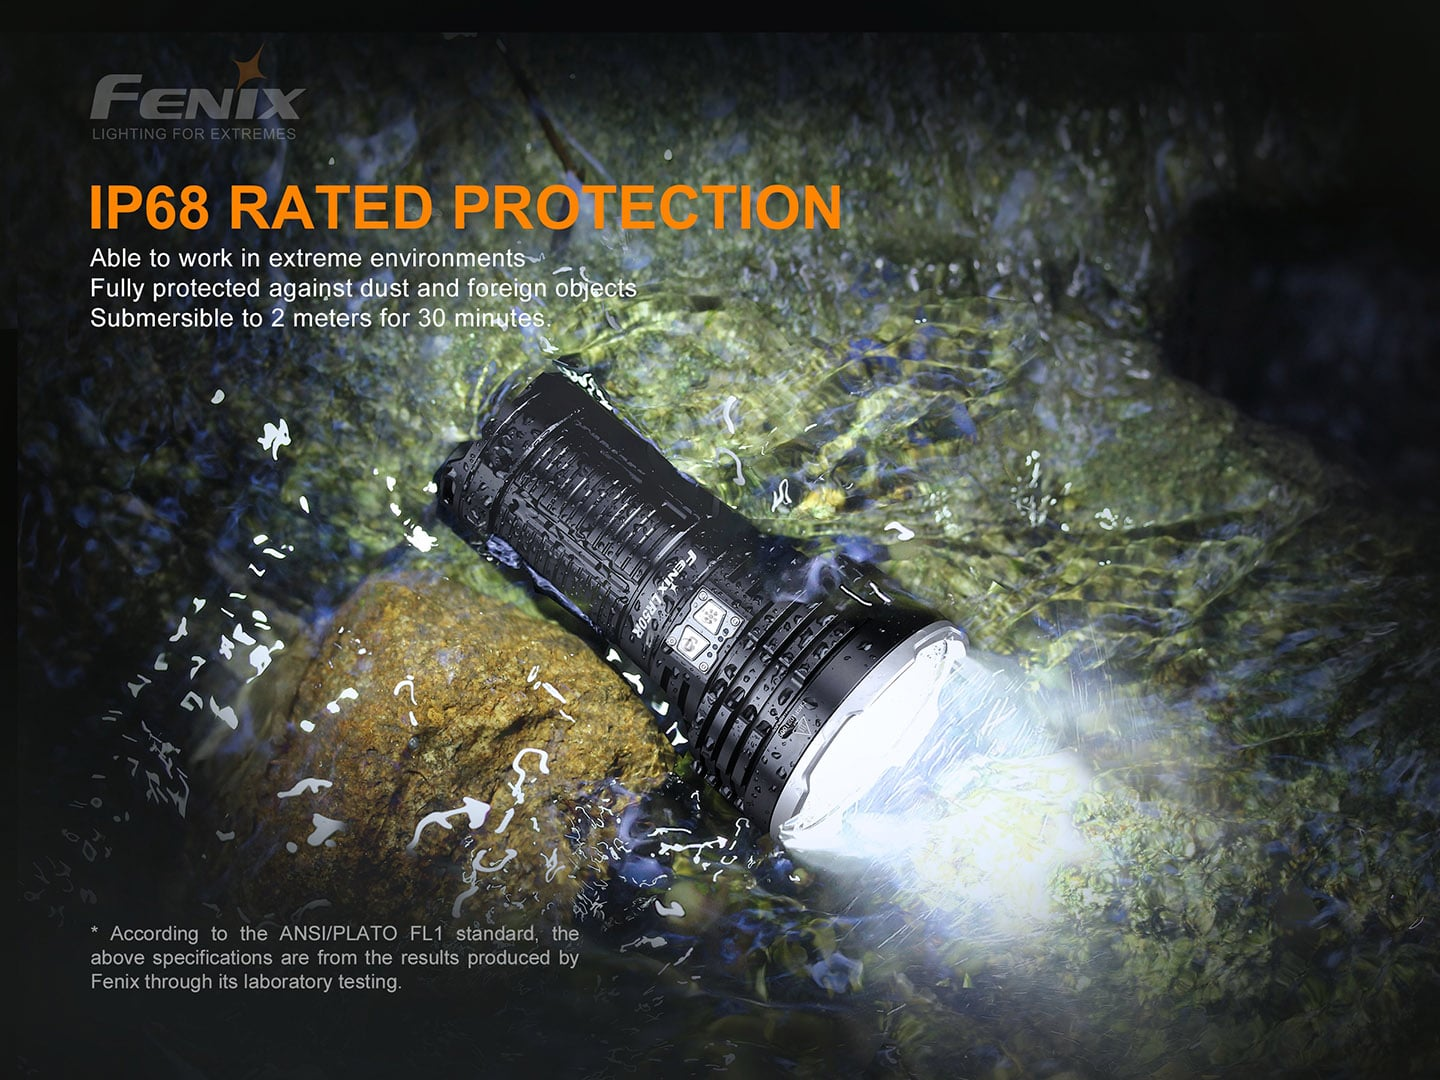 Fenix LR50R Searchlight in India, 12000 Lumens 950m rechargeable flashlight, extremely powerful Long-Range light